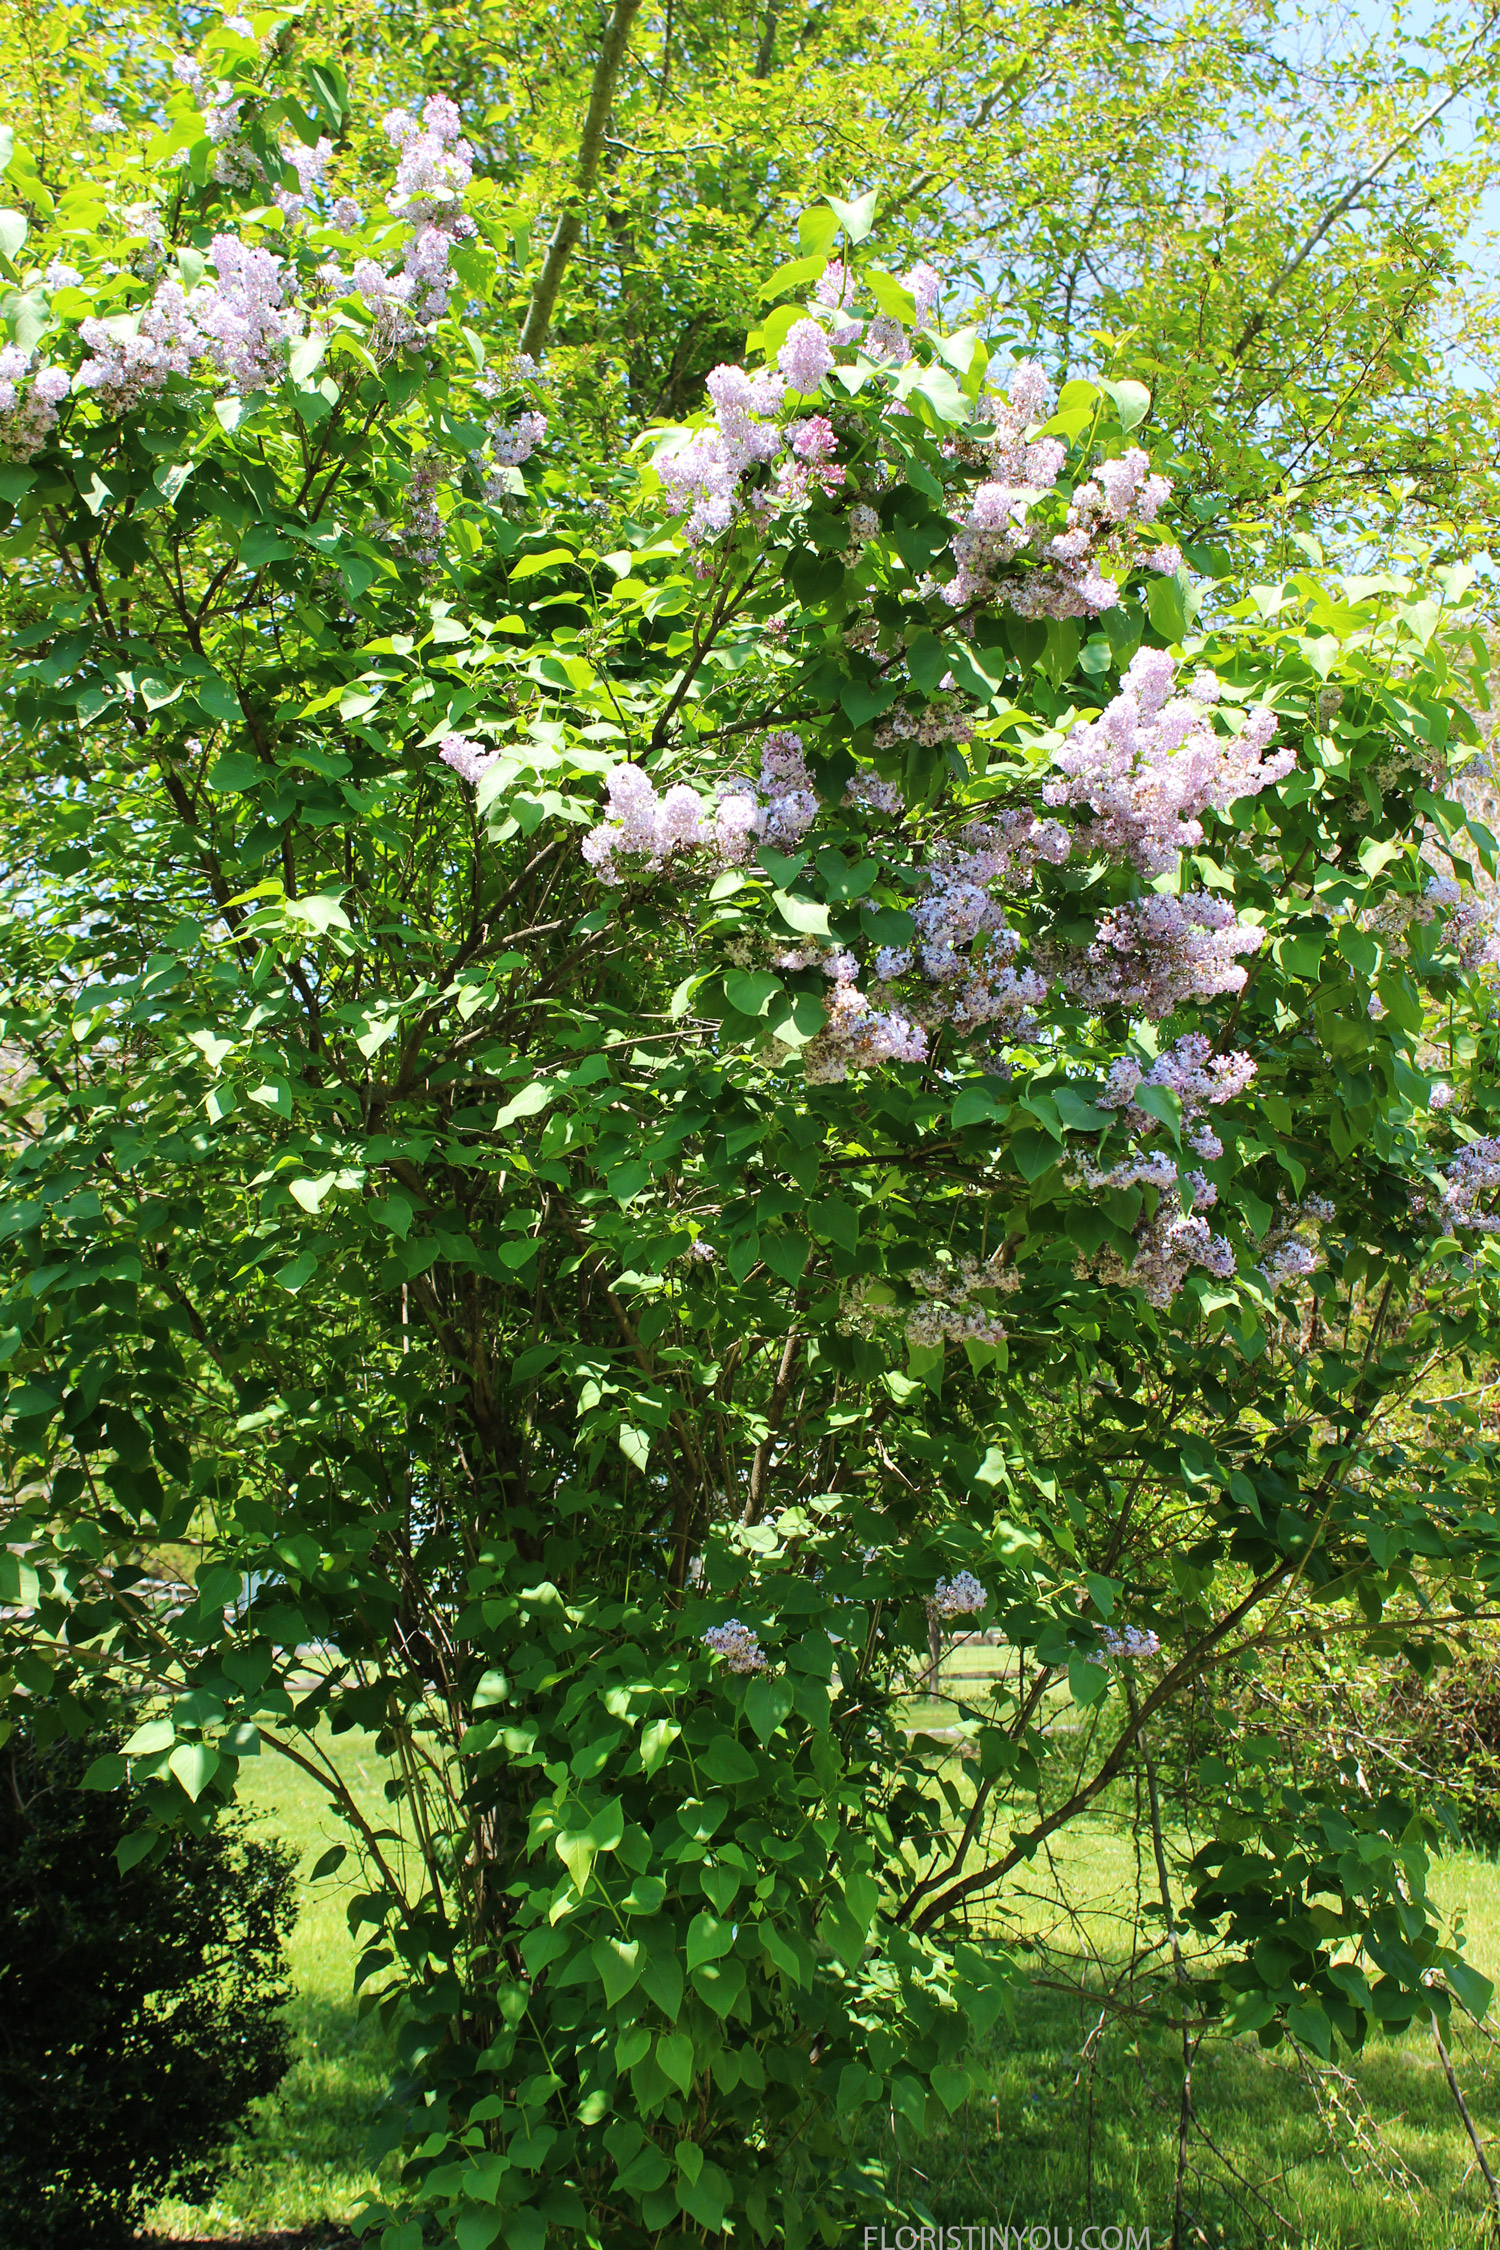 Back in St. James the lilac bush was blooming.